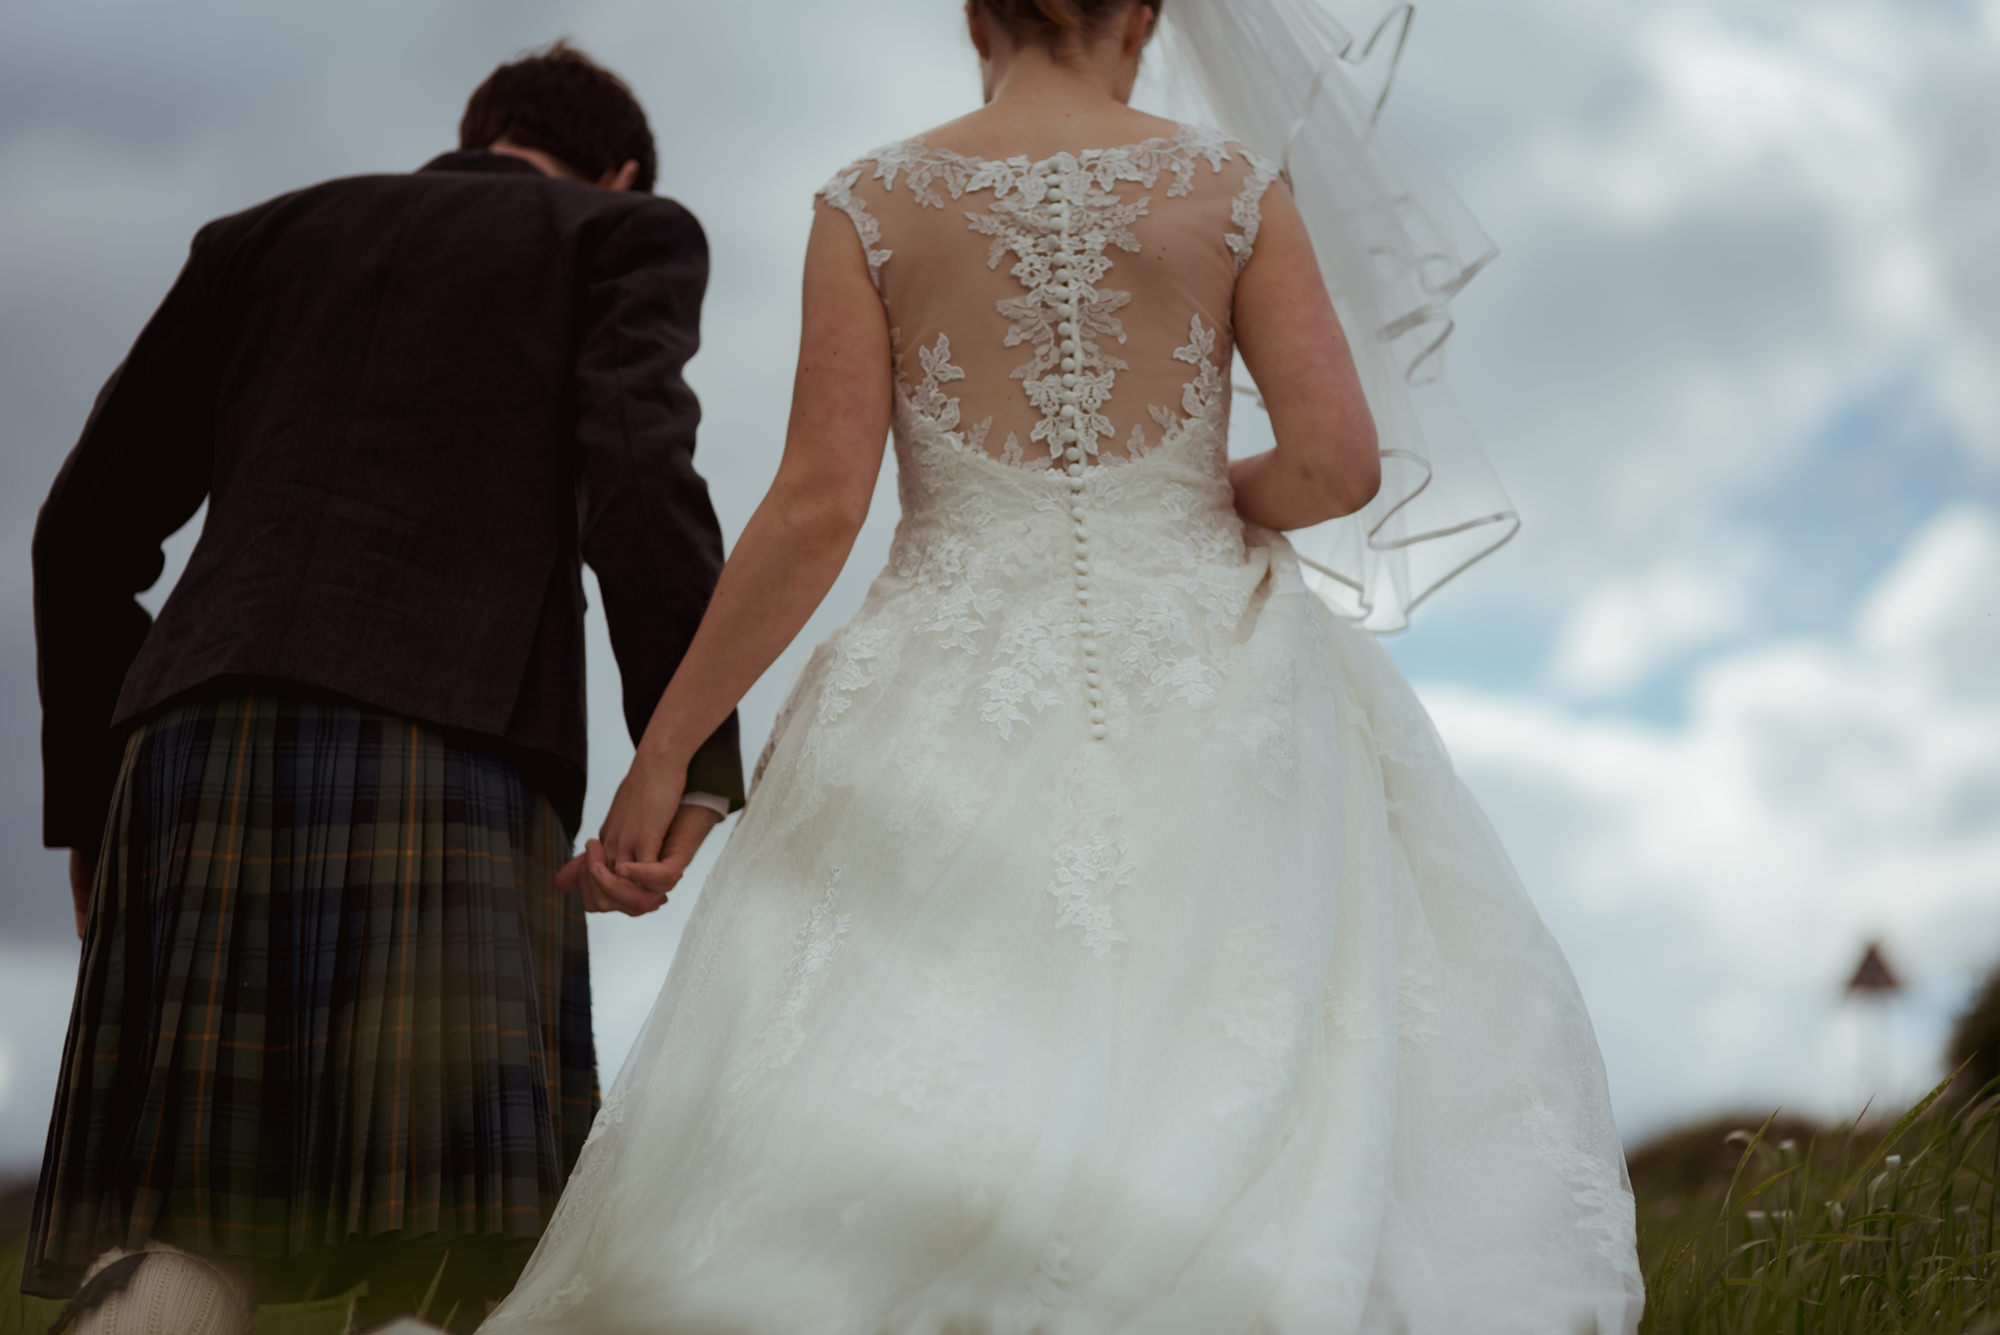 alternative-wedding-photographer-edinburgh.jpg